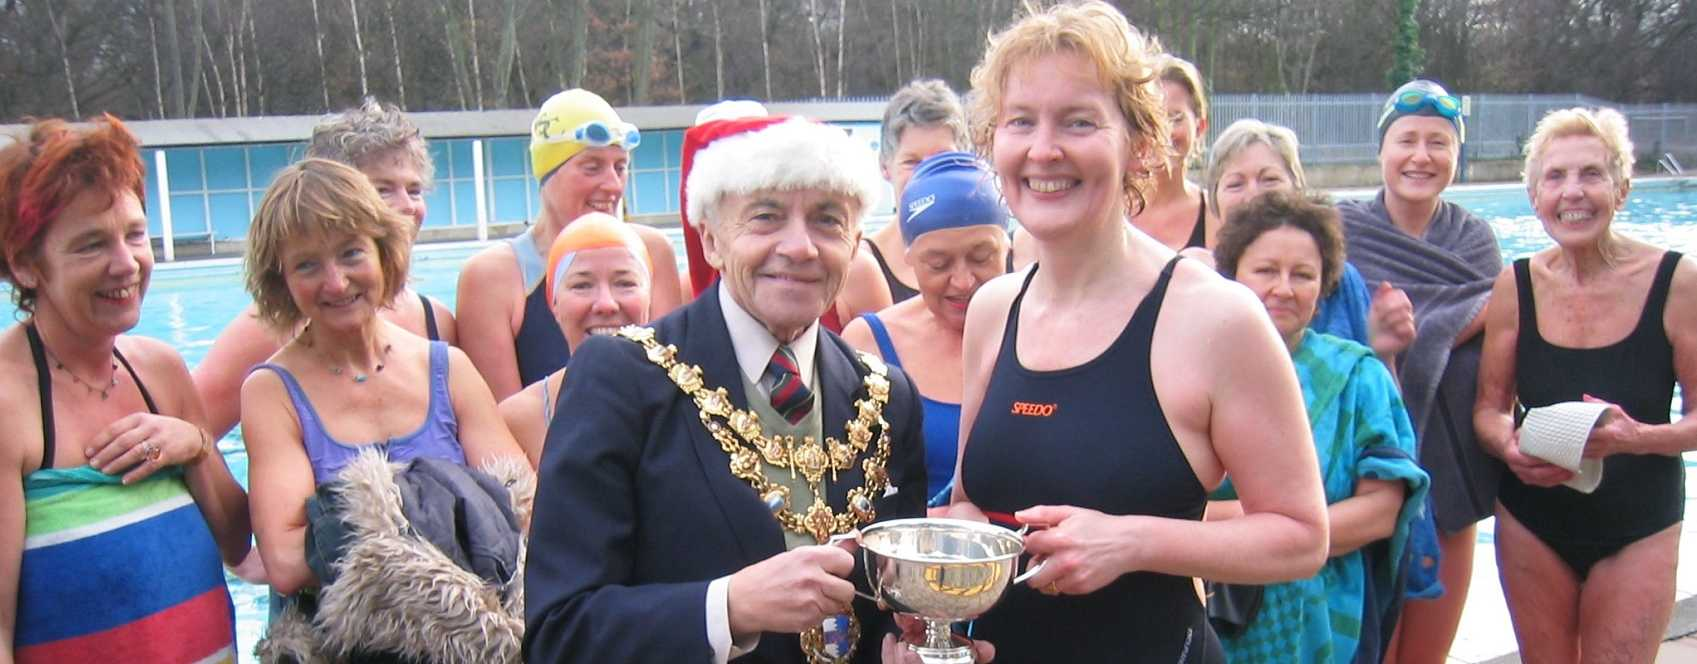 Megan Willis Wins the Christmas day race 2003